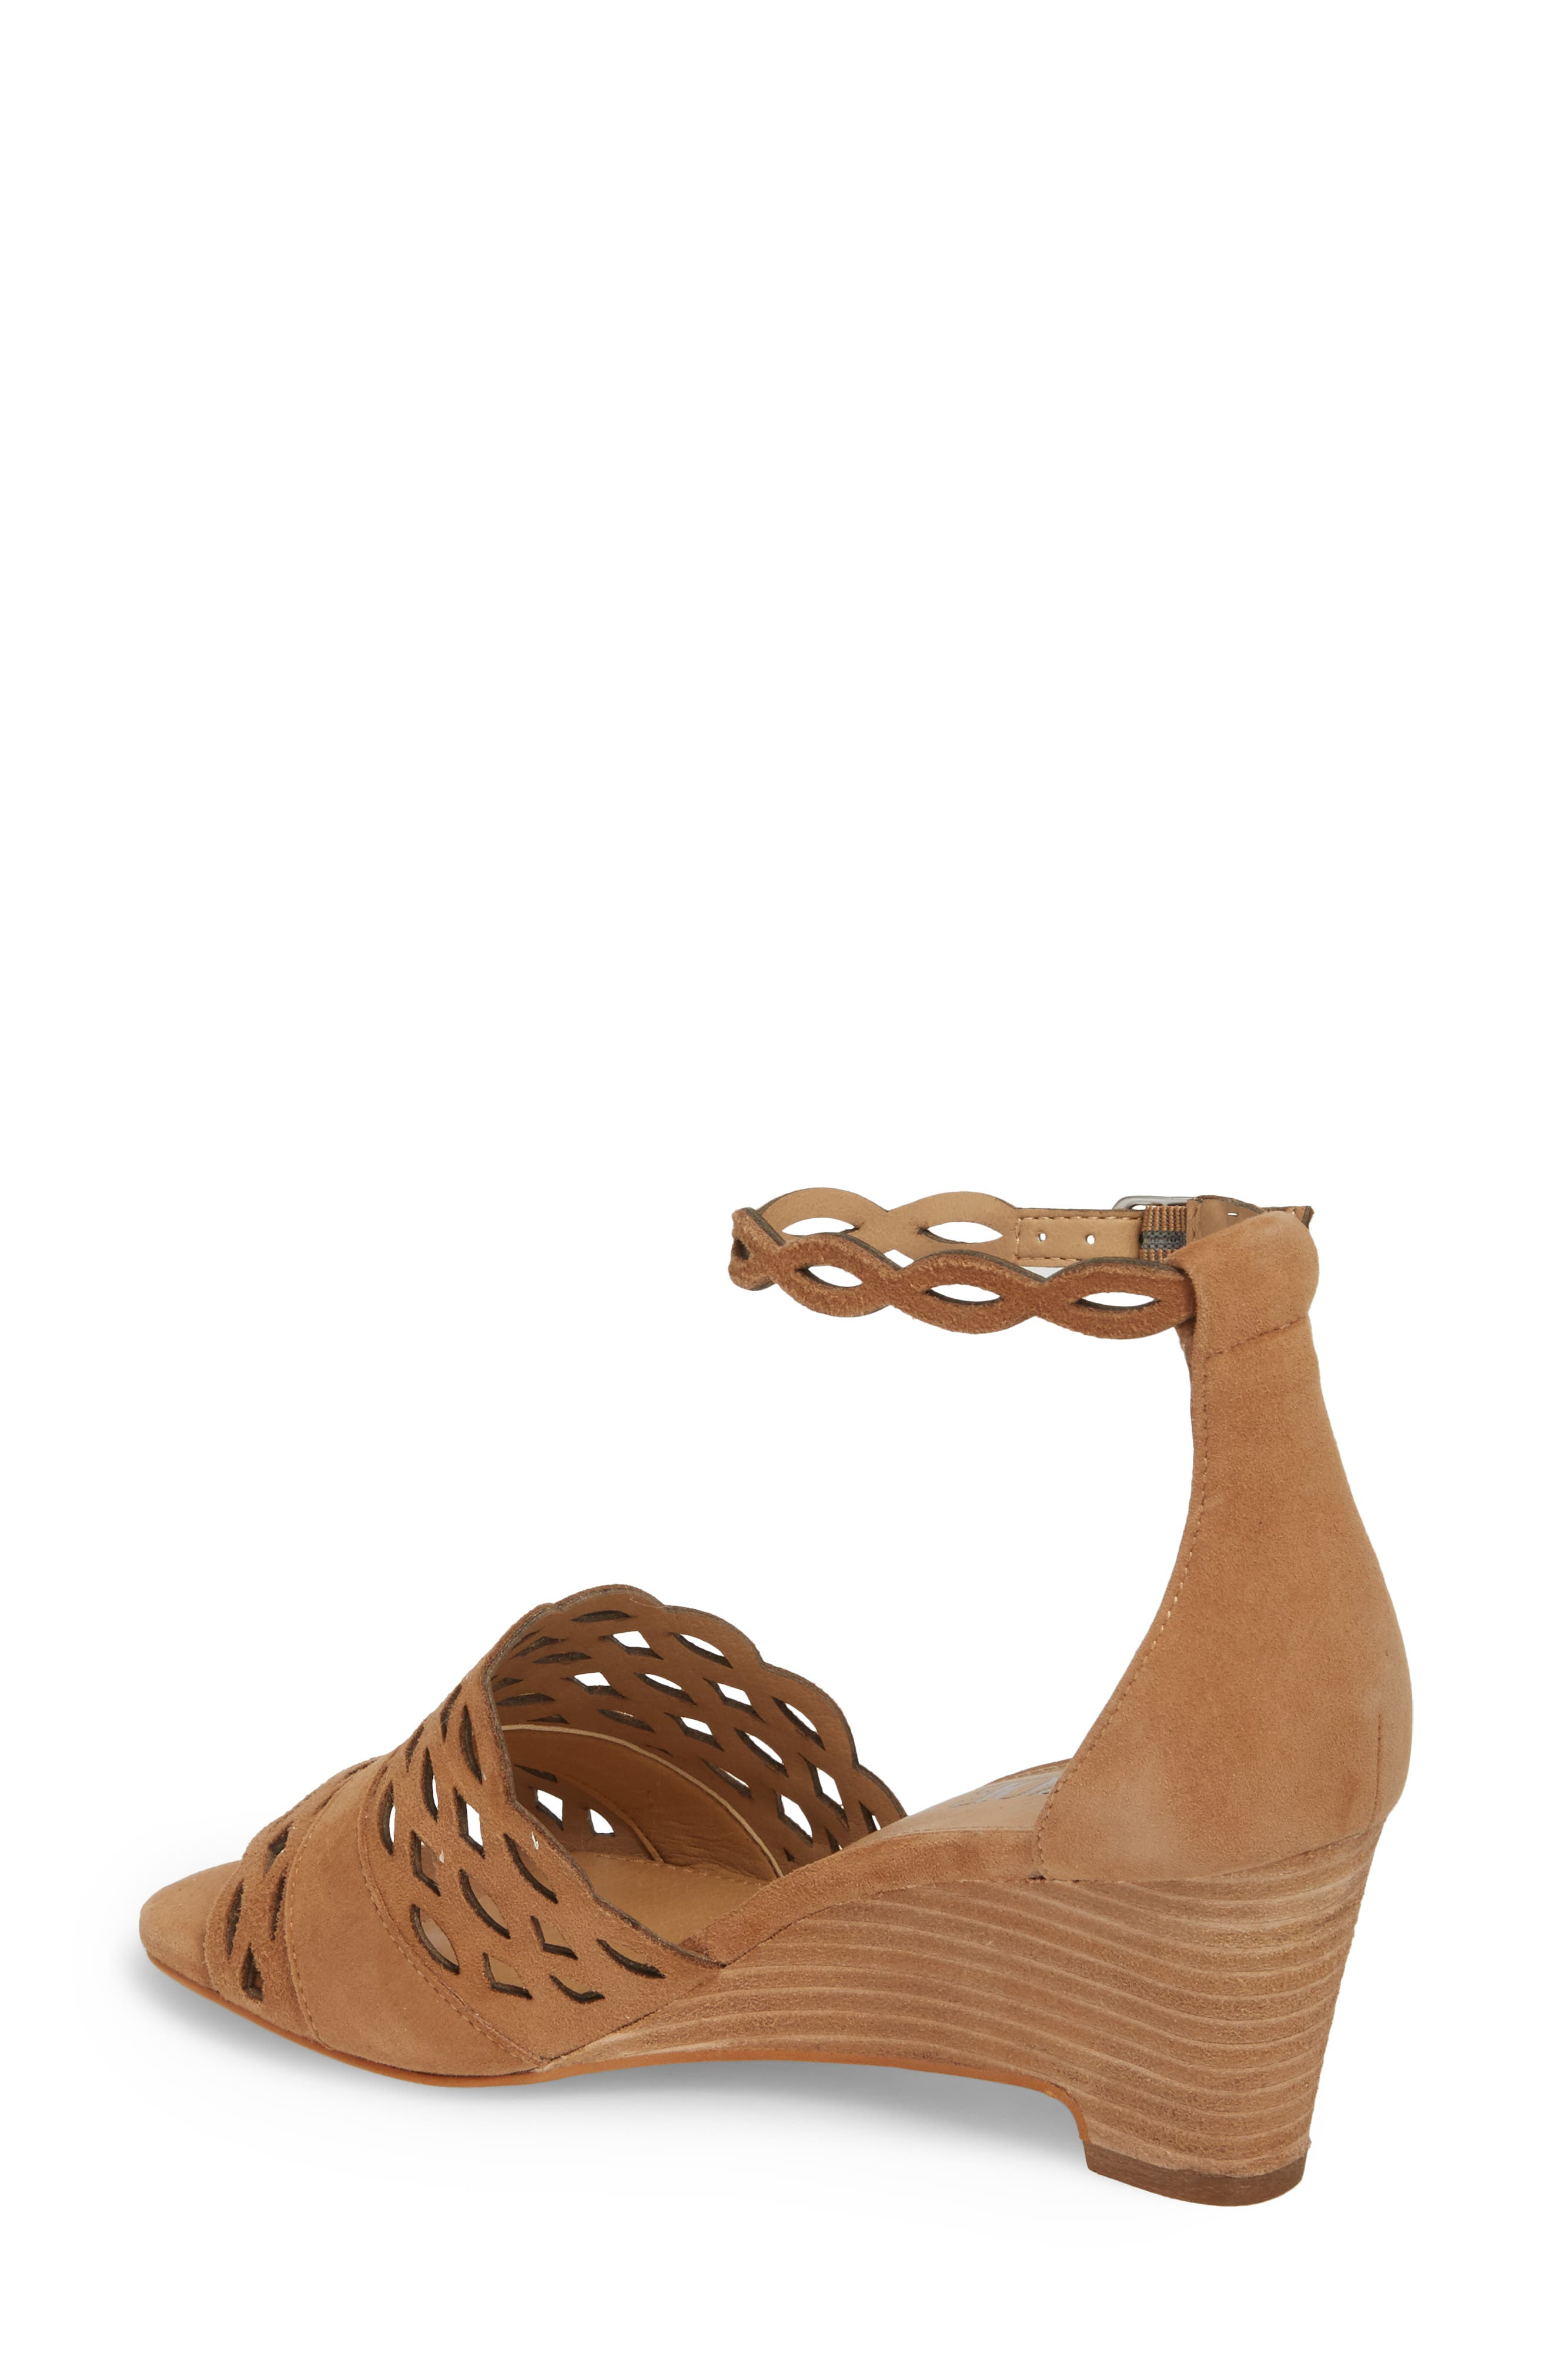 Flora Wedge Sandal,                             Alternate thumbnail 2, color,                             Fawn Leather